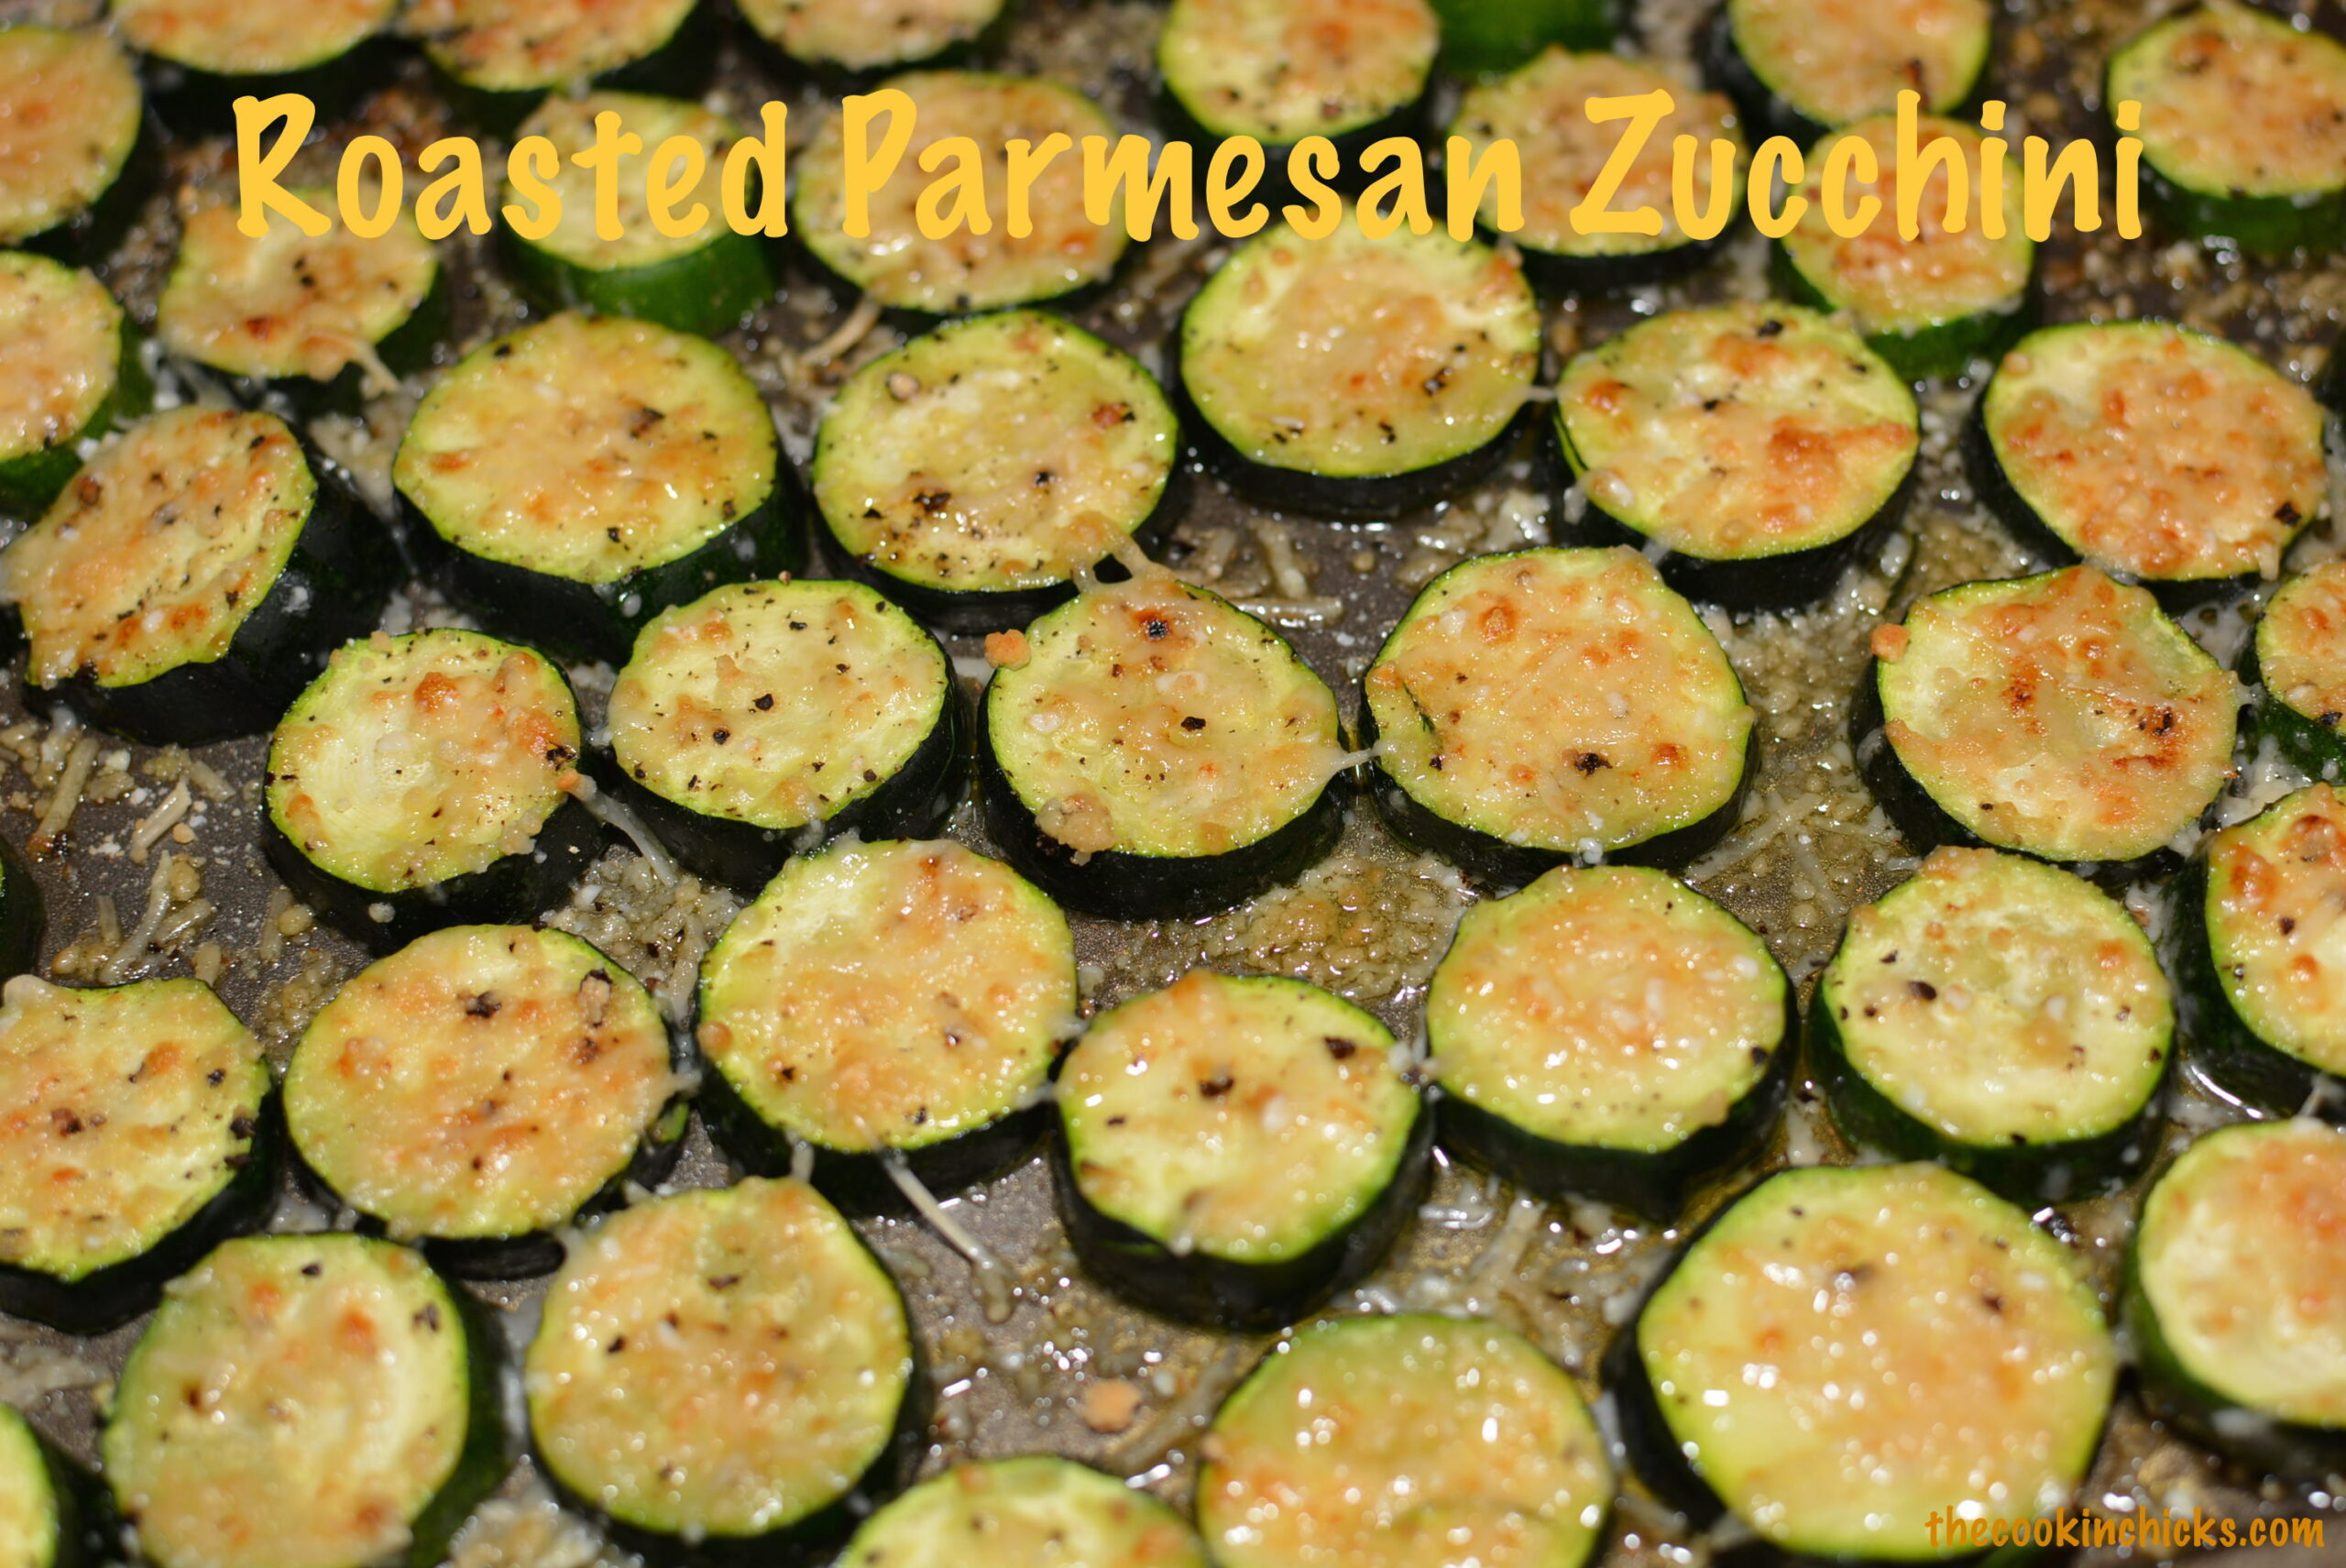 Roasted Parmesan Zucchini | The Cookin Chicks